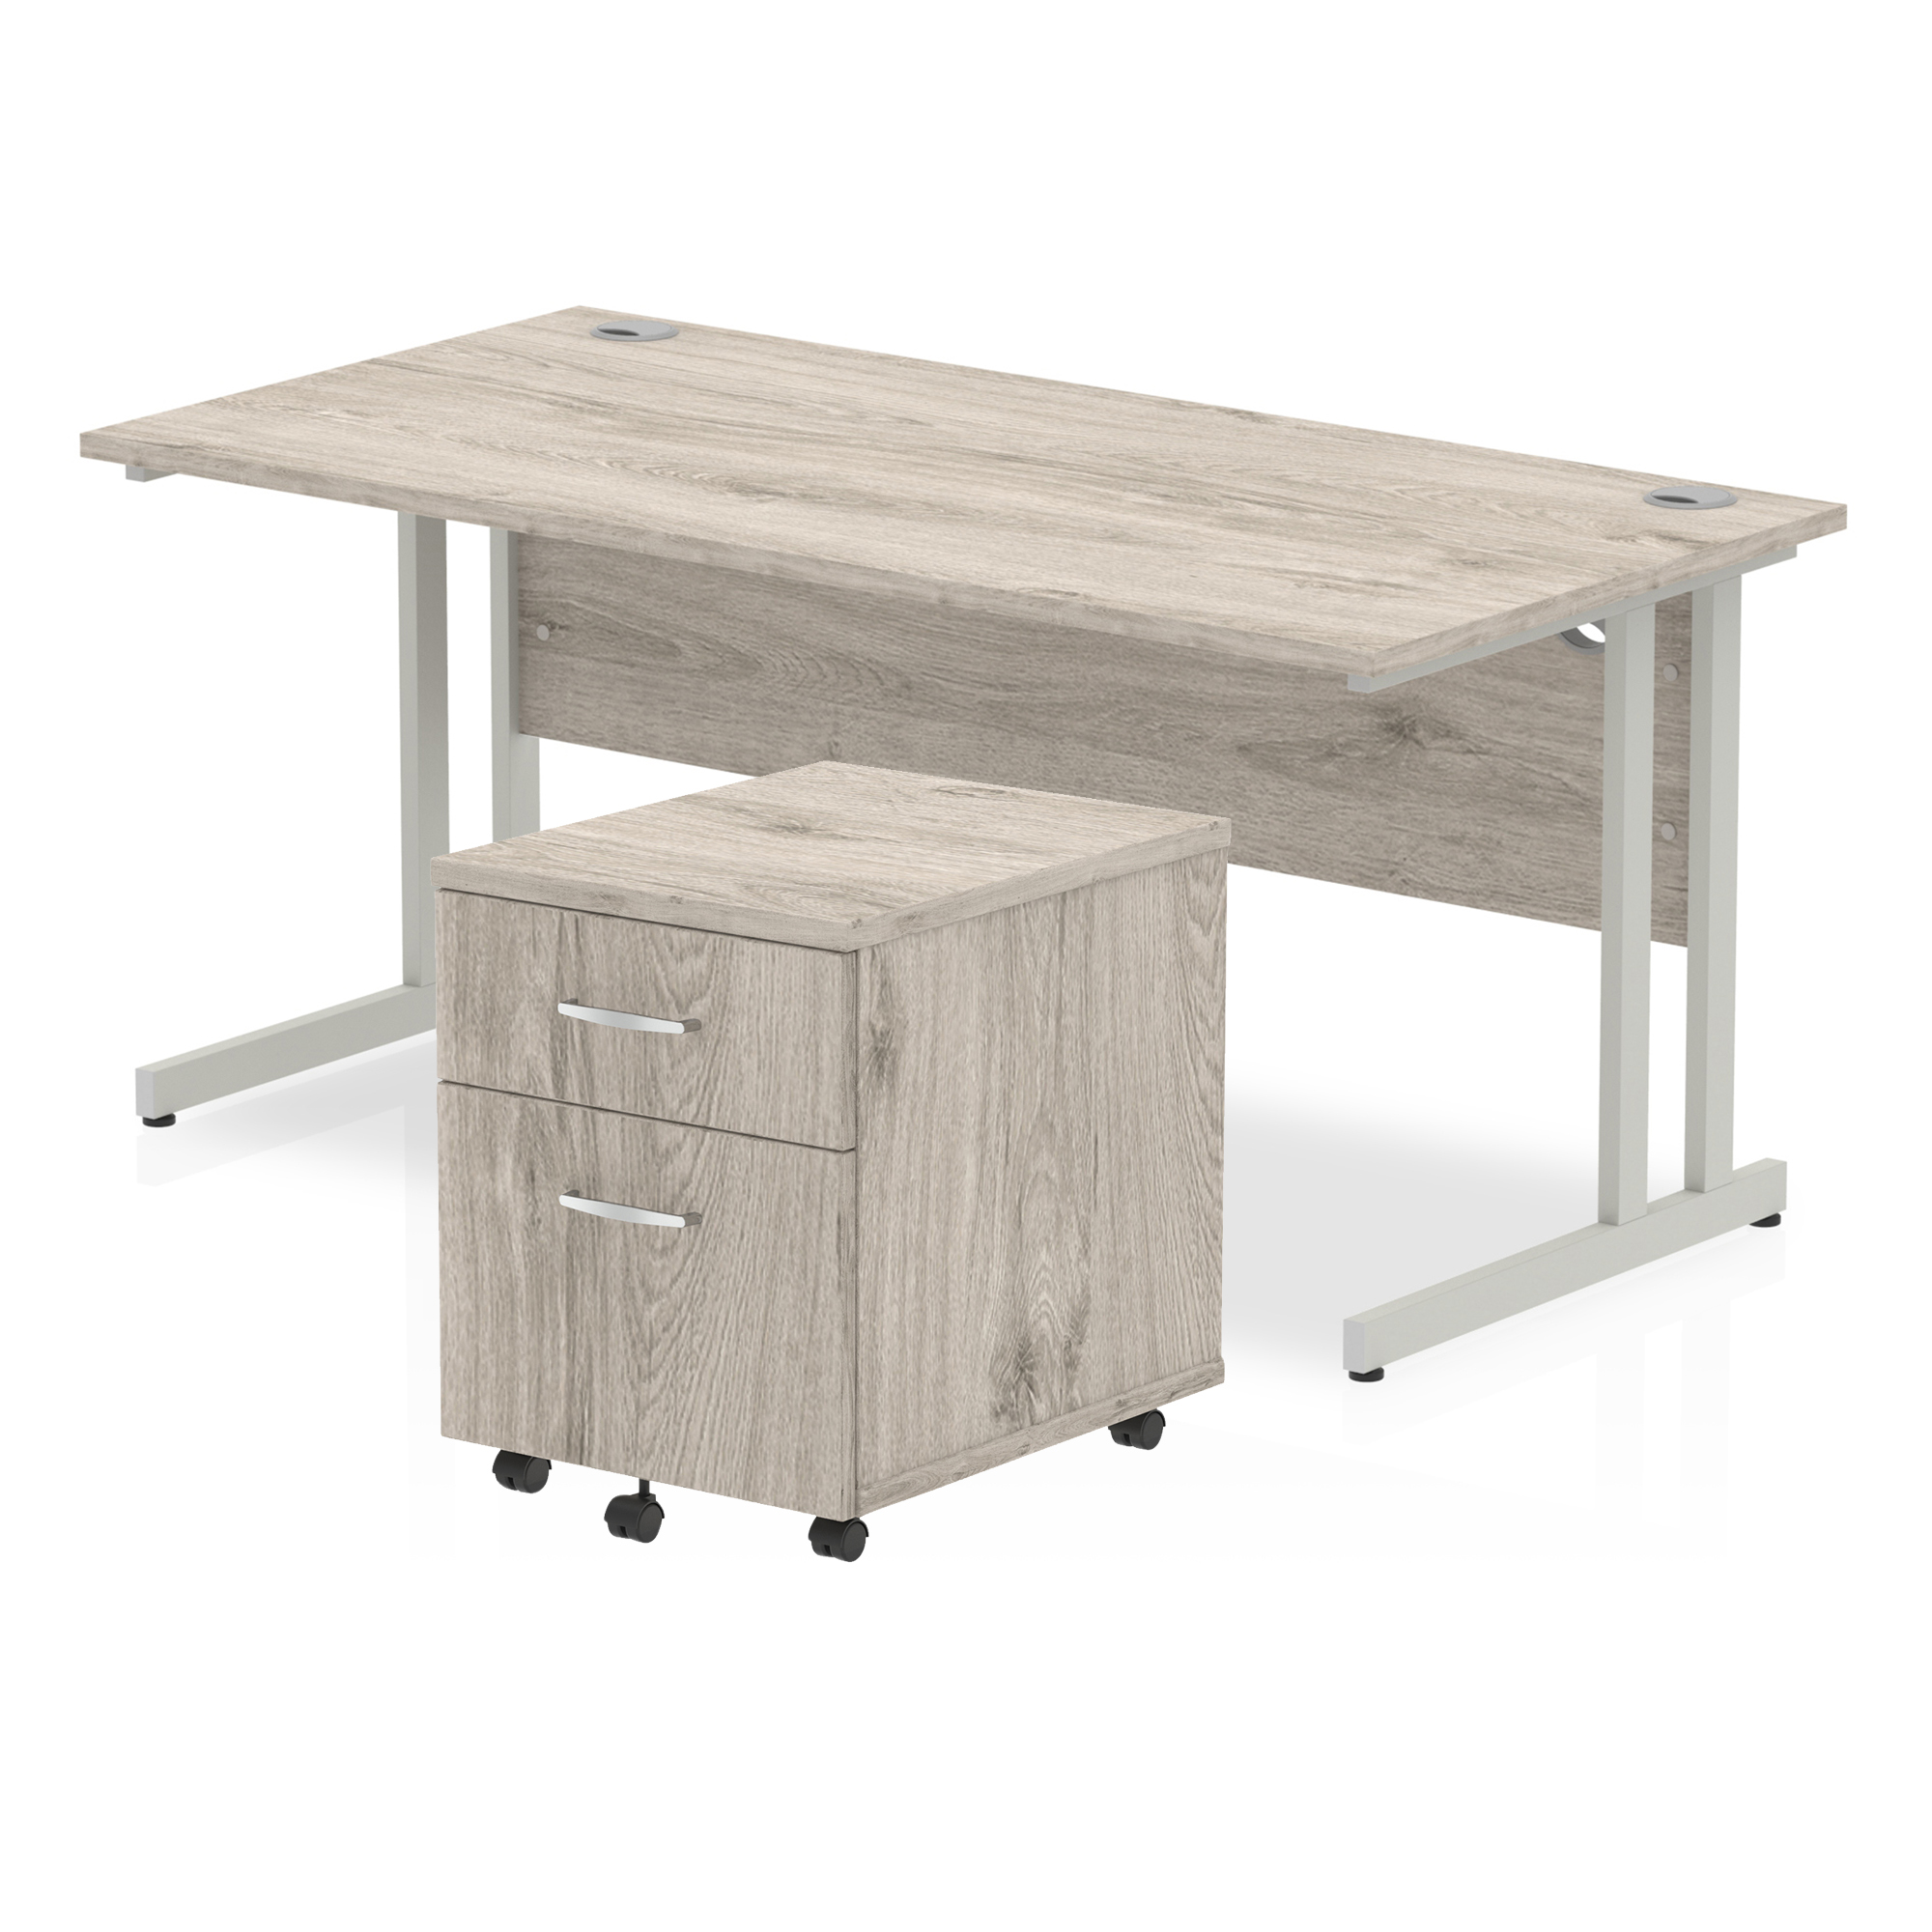 Desks Trexus Cantilever Desk 1600x800 & 2 Drawer Pedestal Grey Oak Bundle Offer Feb-Apr 2020